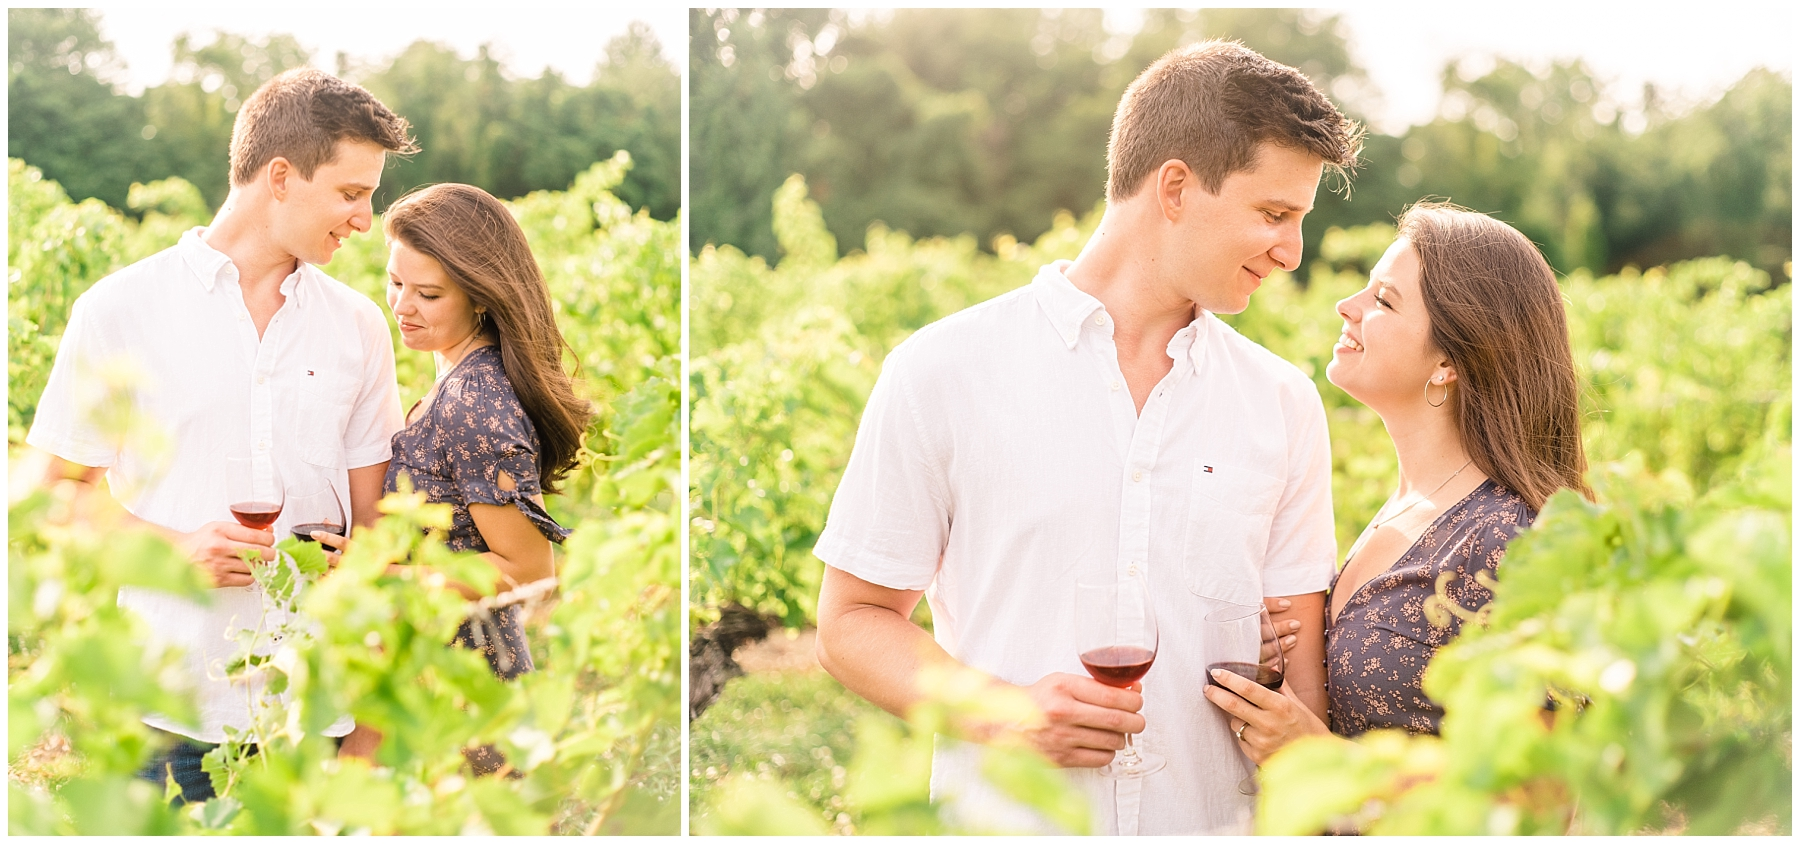 lafayette indiana engagement photography lake michigan vineyard winery wedding photographer elopement destination wedding (12).jpg